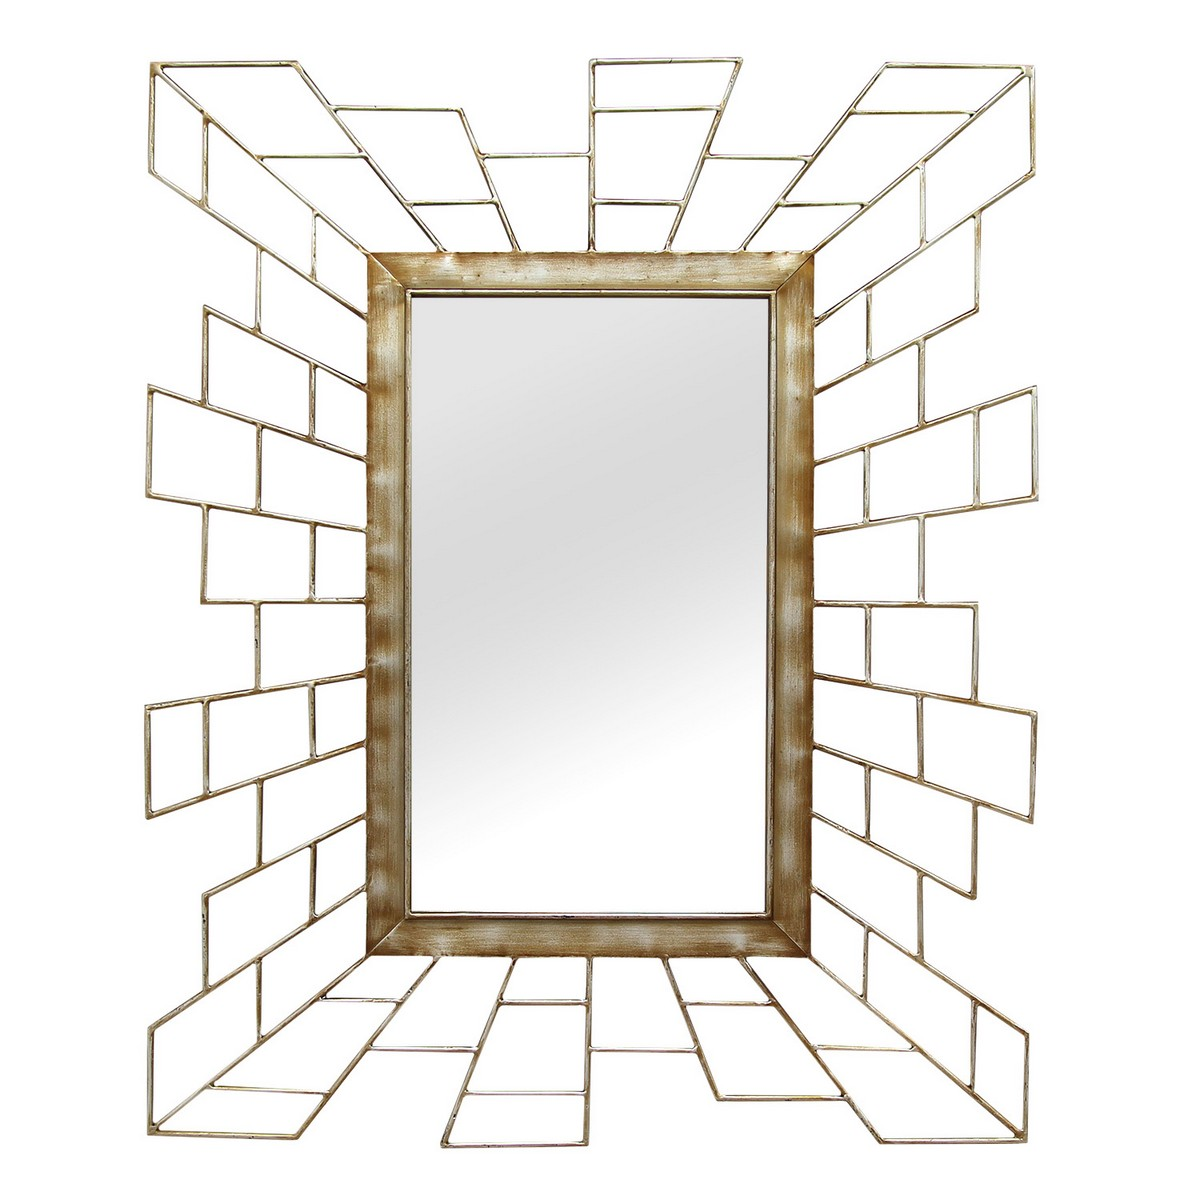 Stratton home decor jennifer wall mirror gold shd0160 at for Stratton house